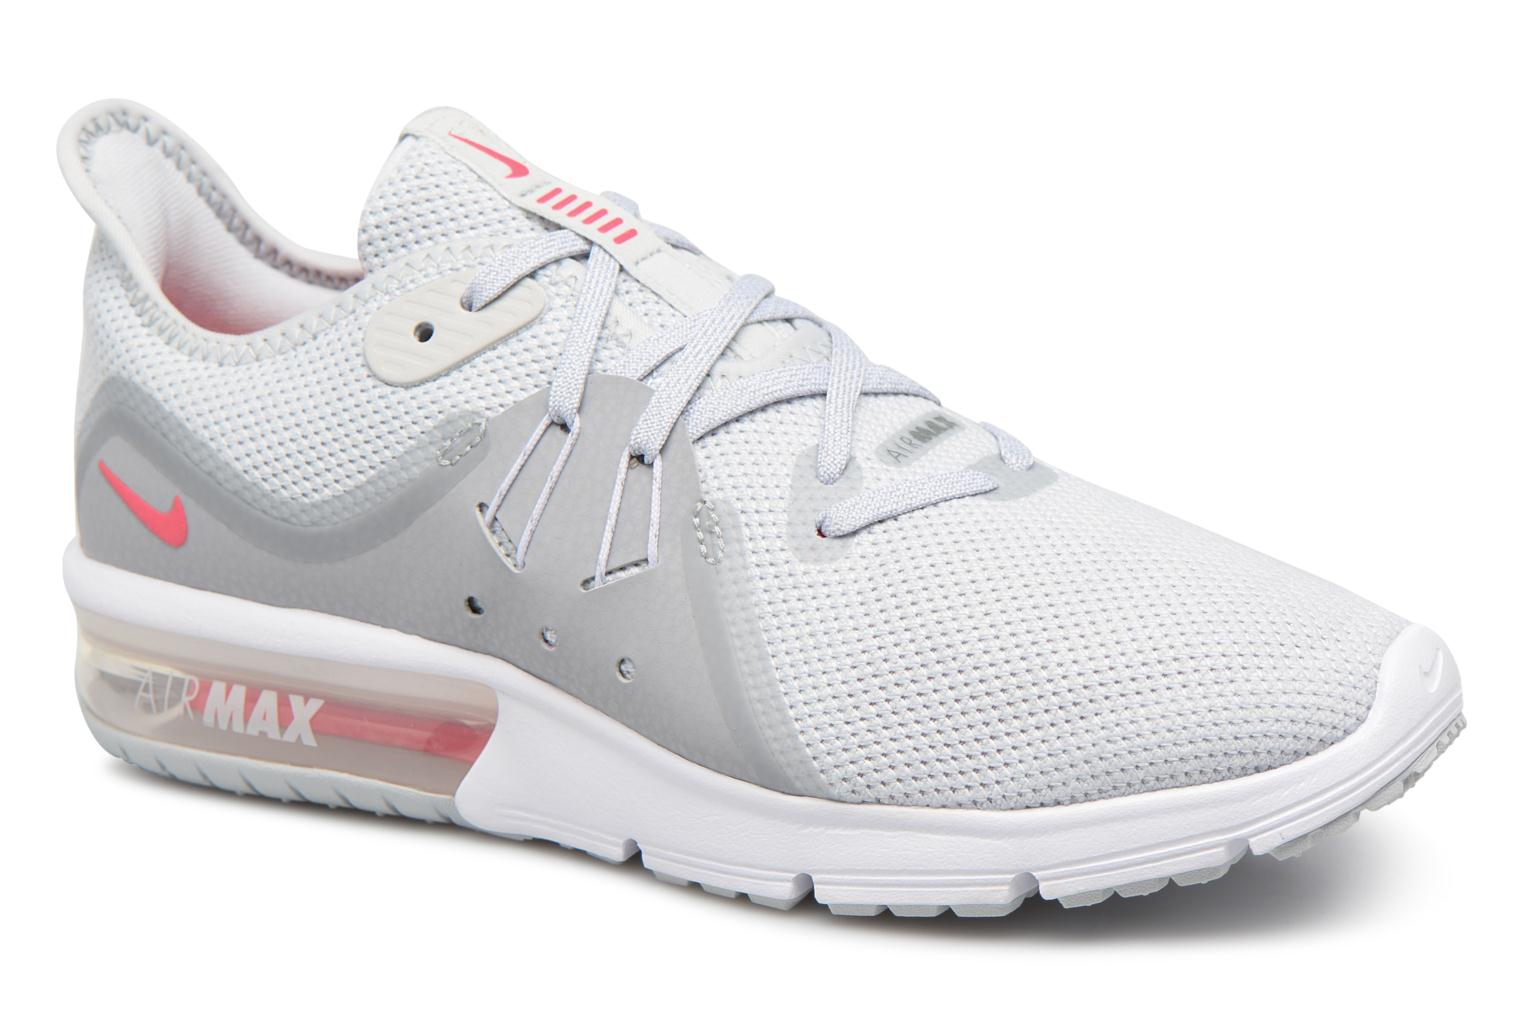 the latest b7ce3 c98b6 Grandes descuentos últimos zapatos Nike Wmns Nike Air Max Sequent 3 (Gris)  - Zapatillas